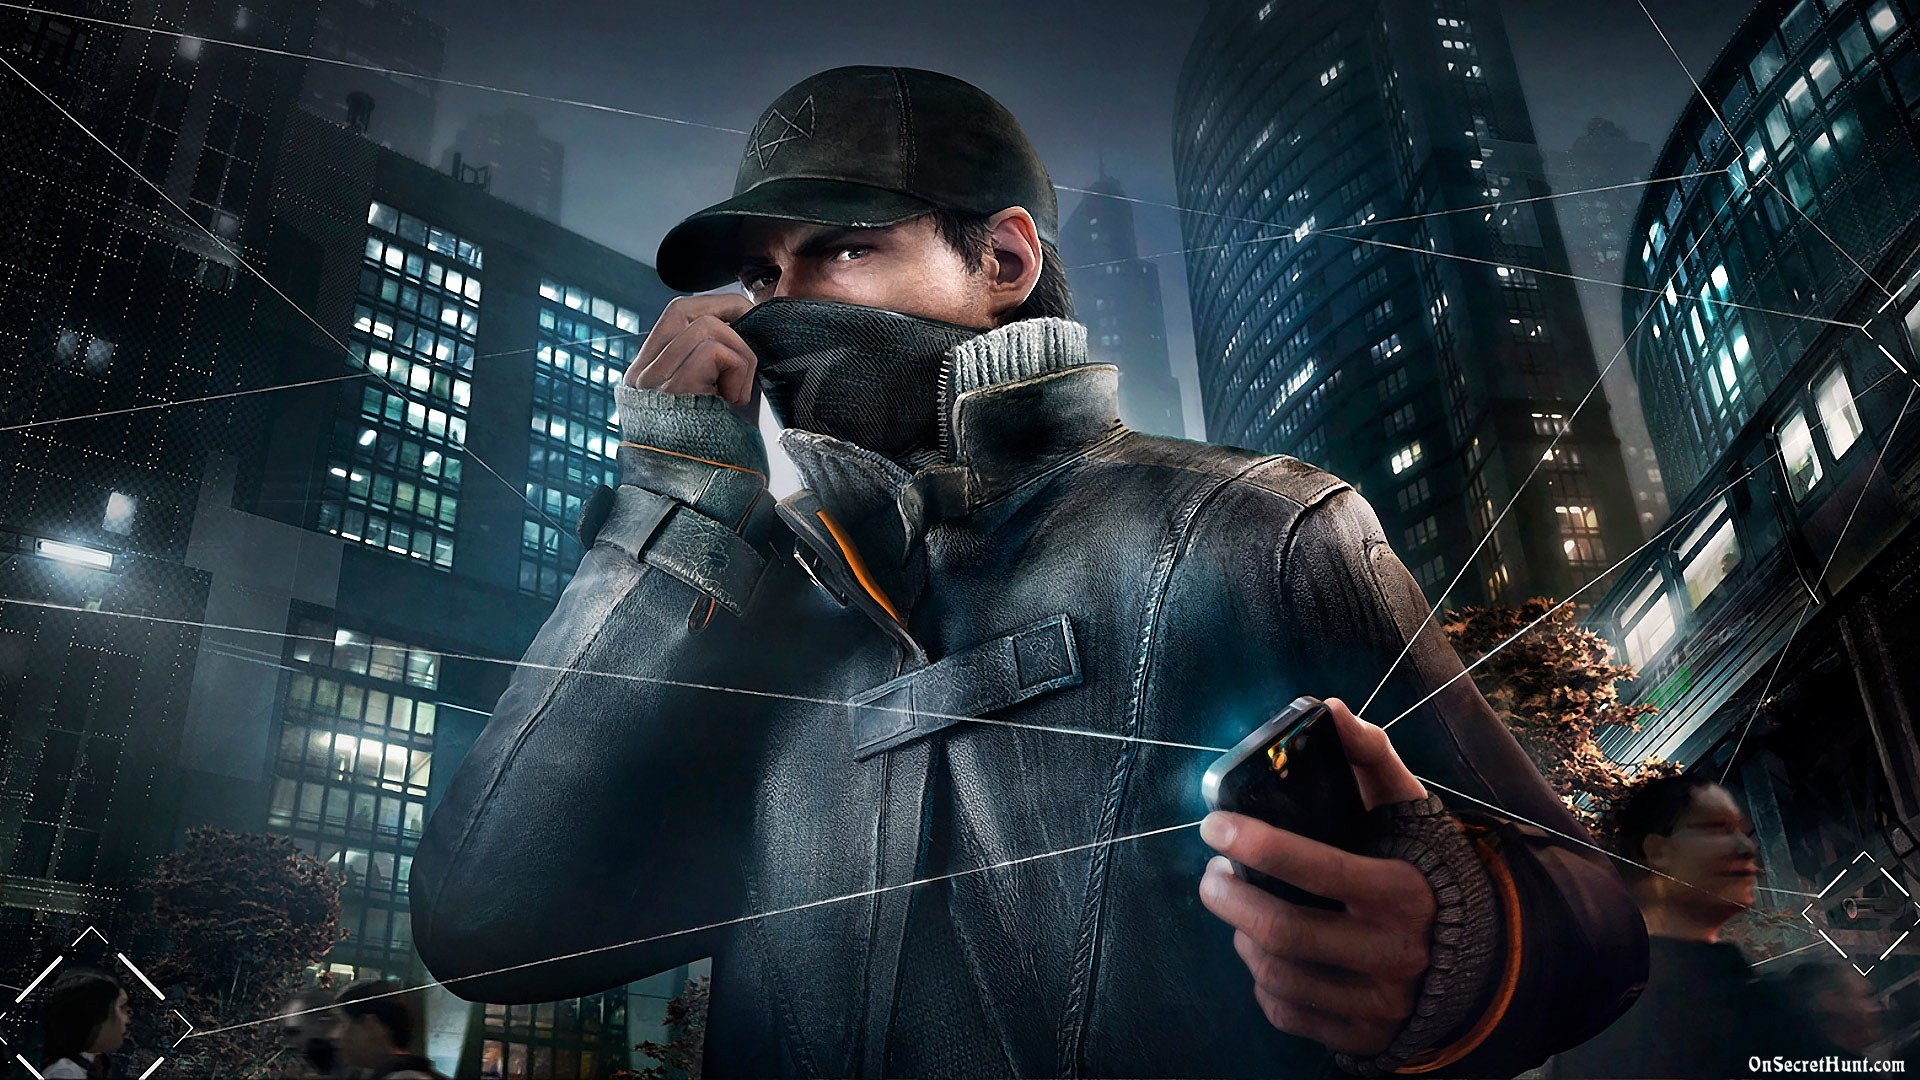 Free Download Watch Dogs Wallpaper Hd 1080p Image Gallery